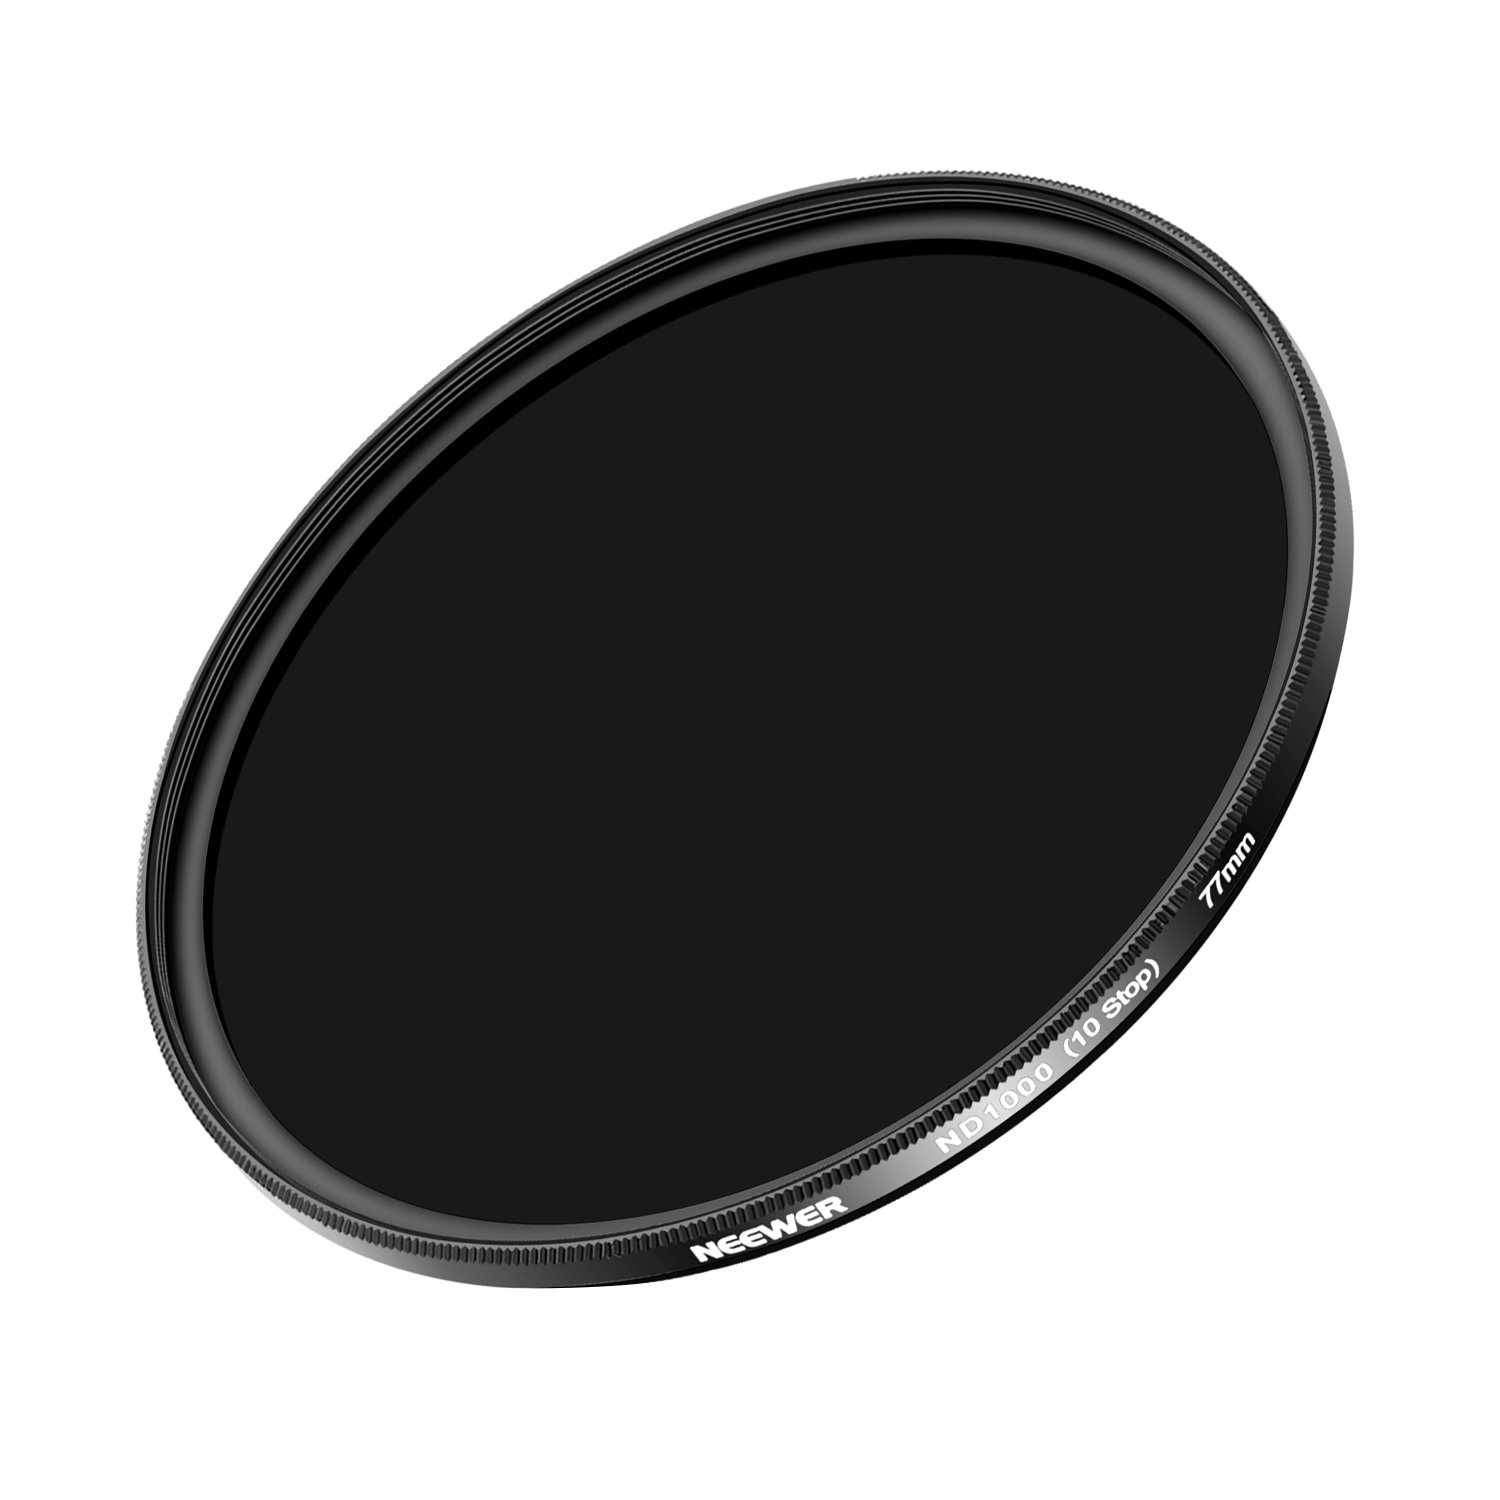 Neewer Slim 77mm Neutral Density ND 1000 Camera Lens Filter for Canon EOS(6D, 5D Mark III) DSLR Cameras, Nikon D600 DSLR Camer and Other Lens with 77mm Filter Thread Size by Neewer